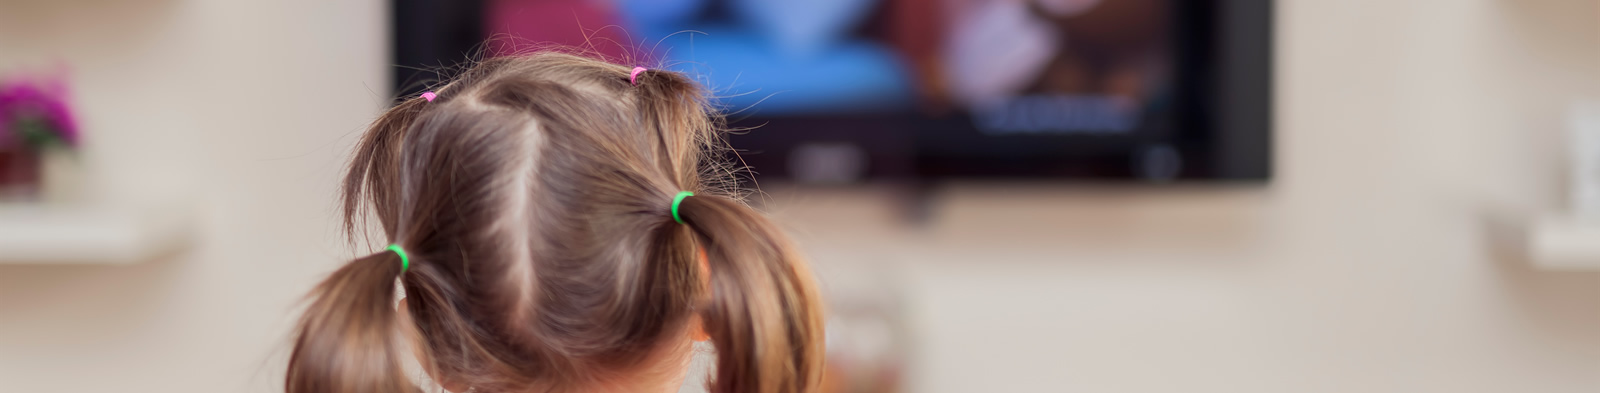 Child watching advertising on television